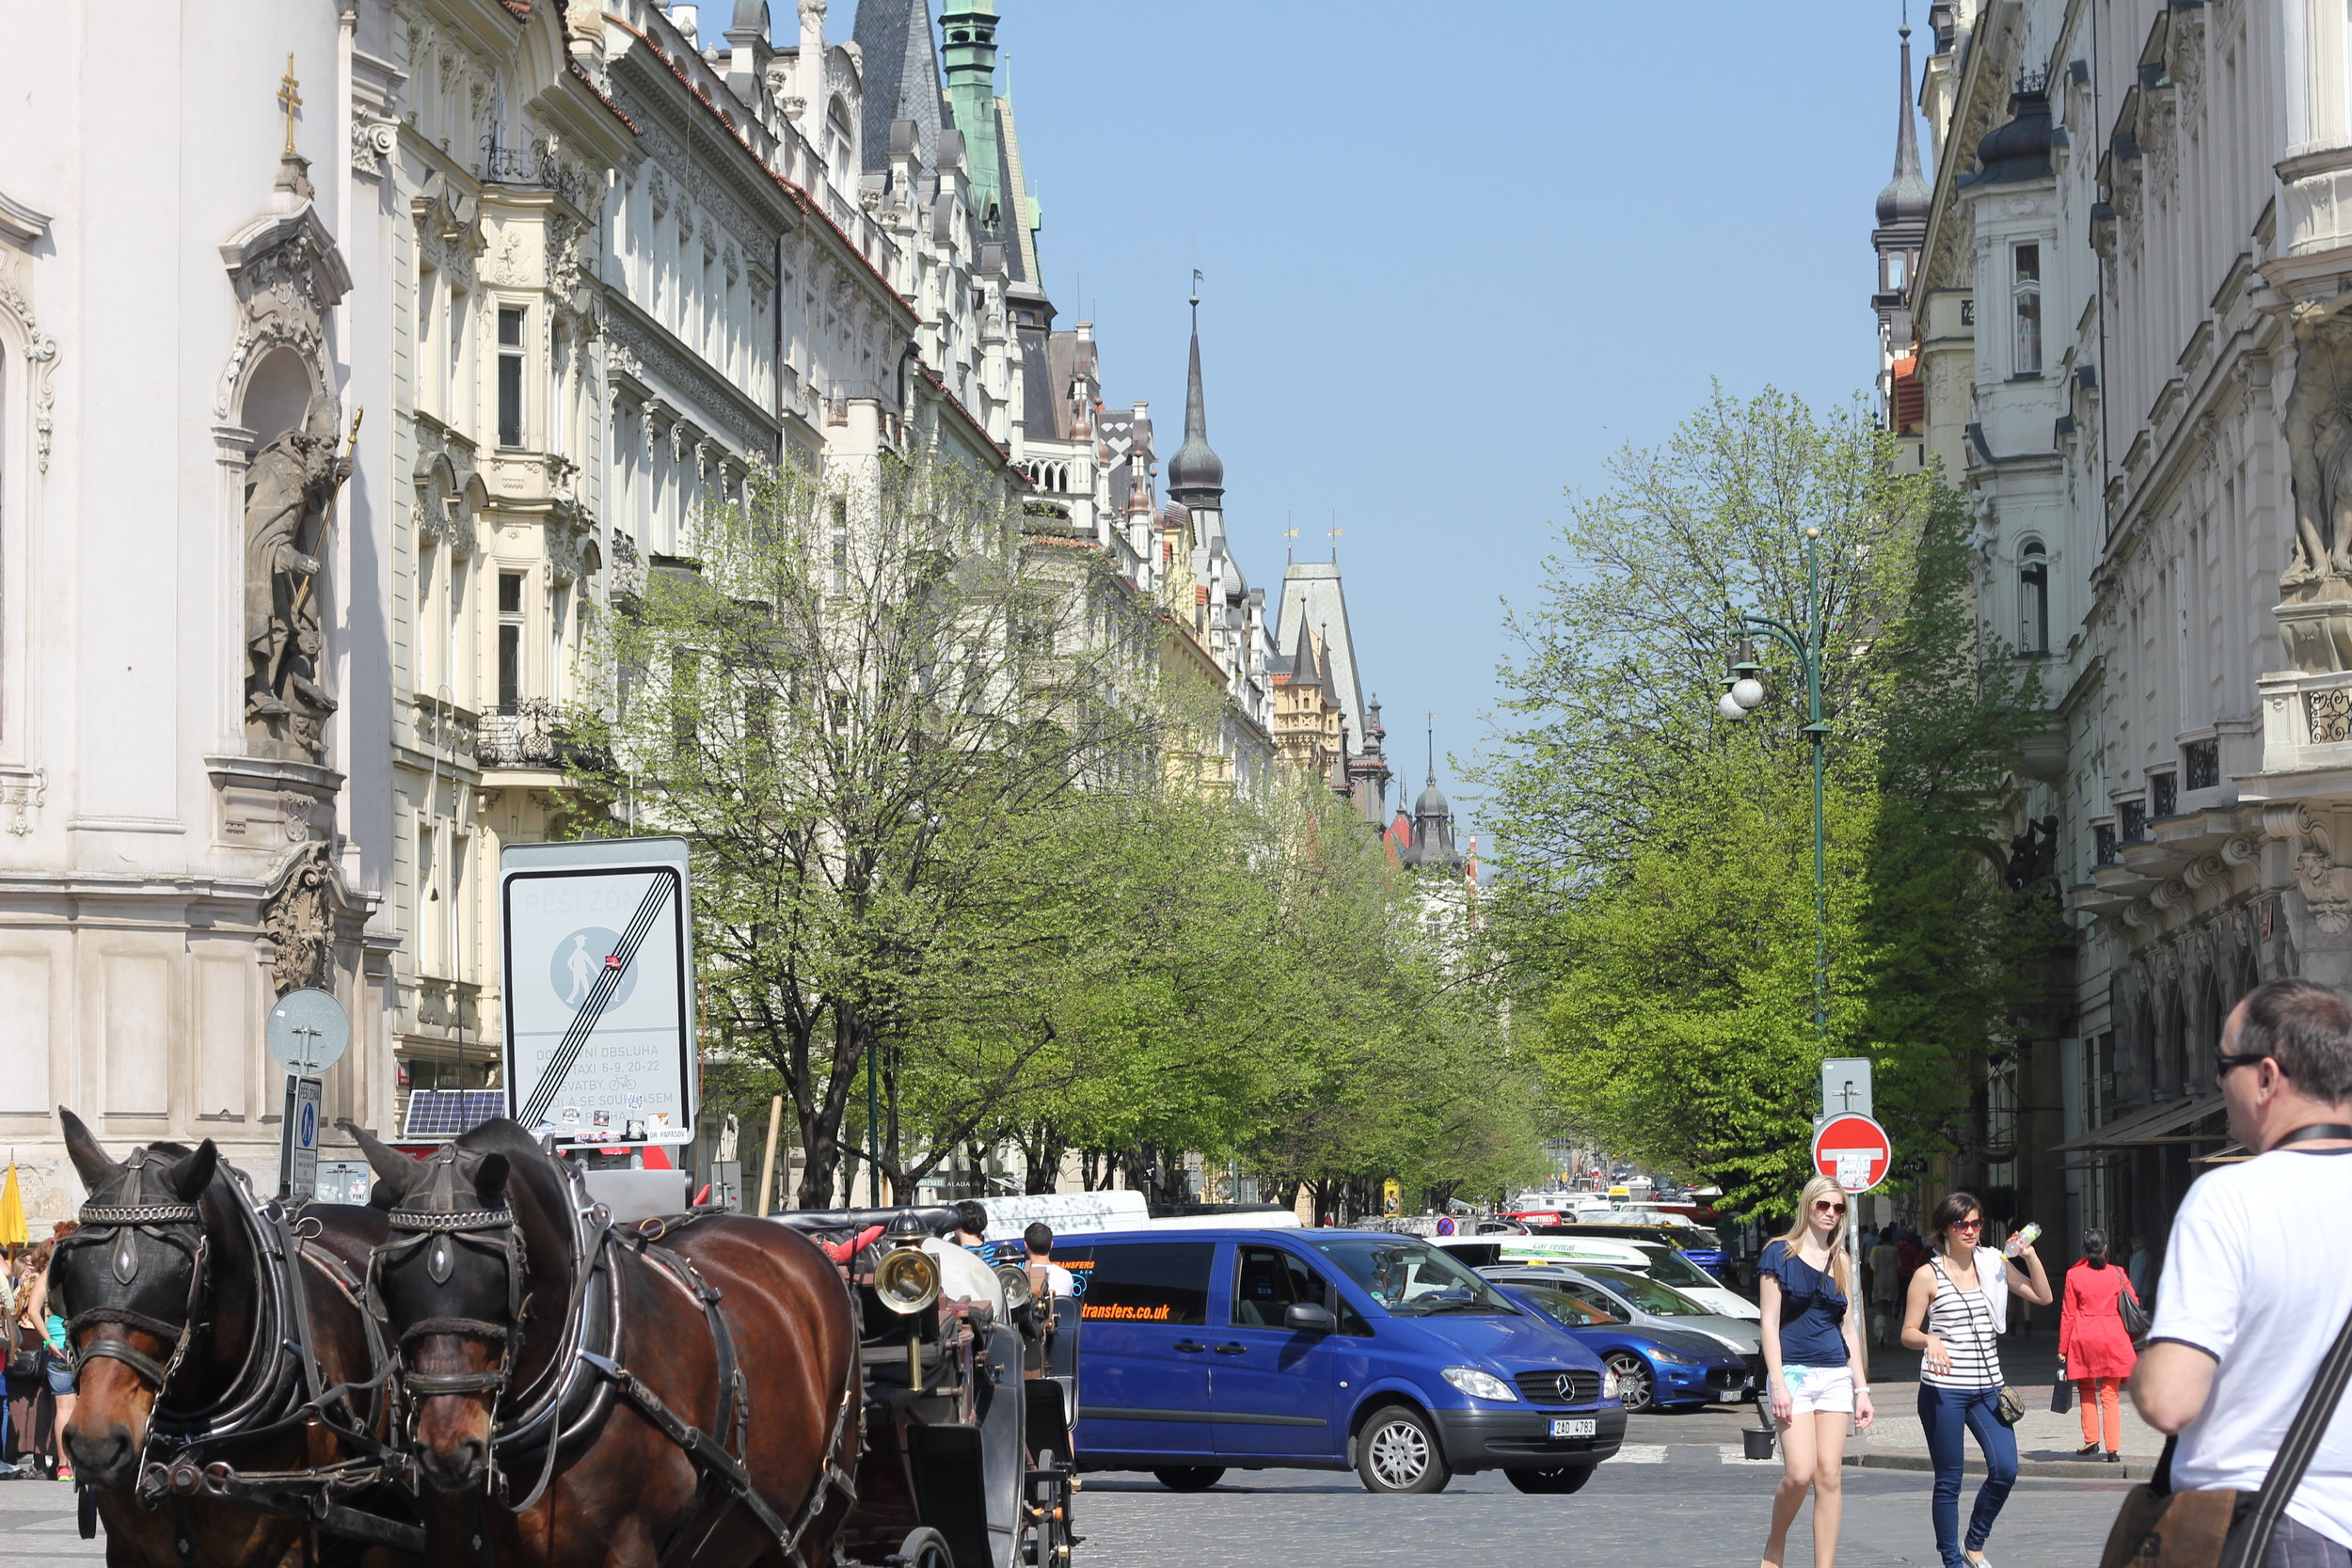 See? Horse and carriage. Smells like Czech spirit.